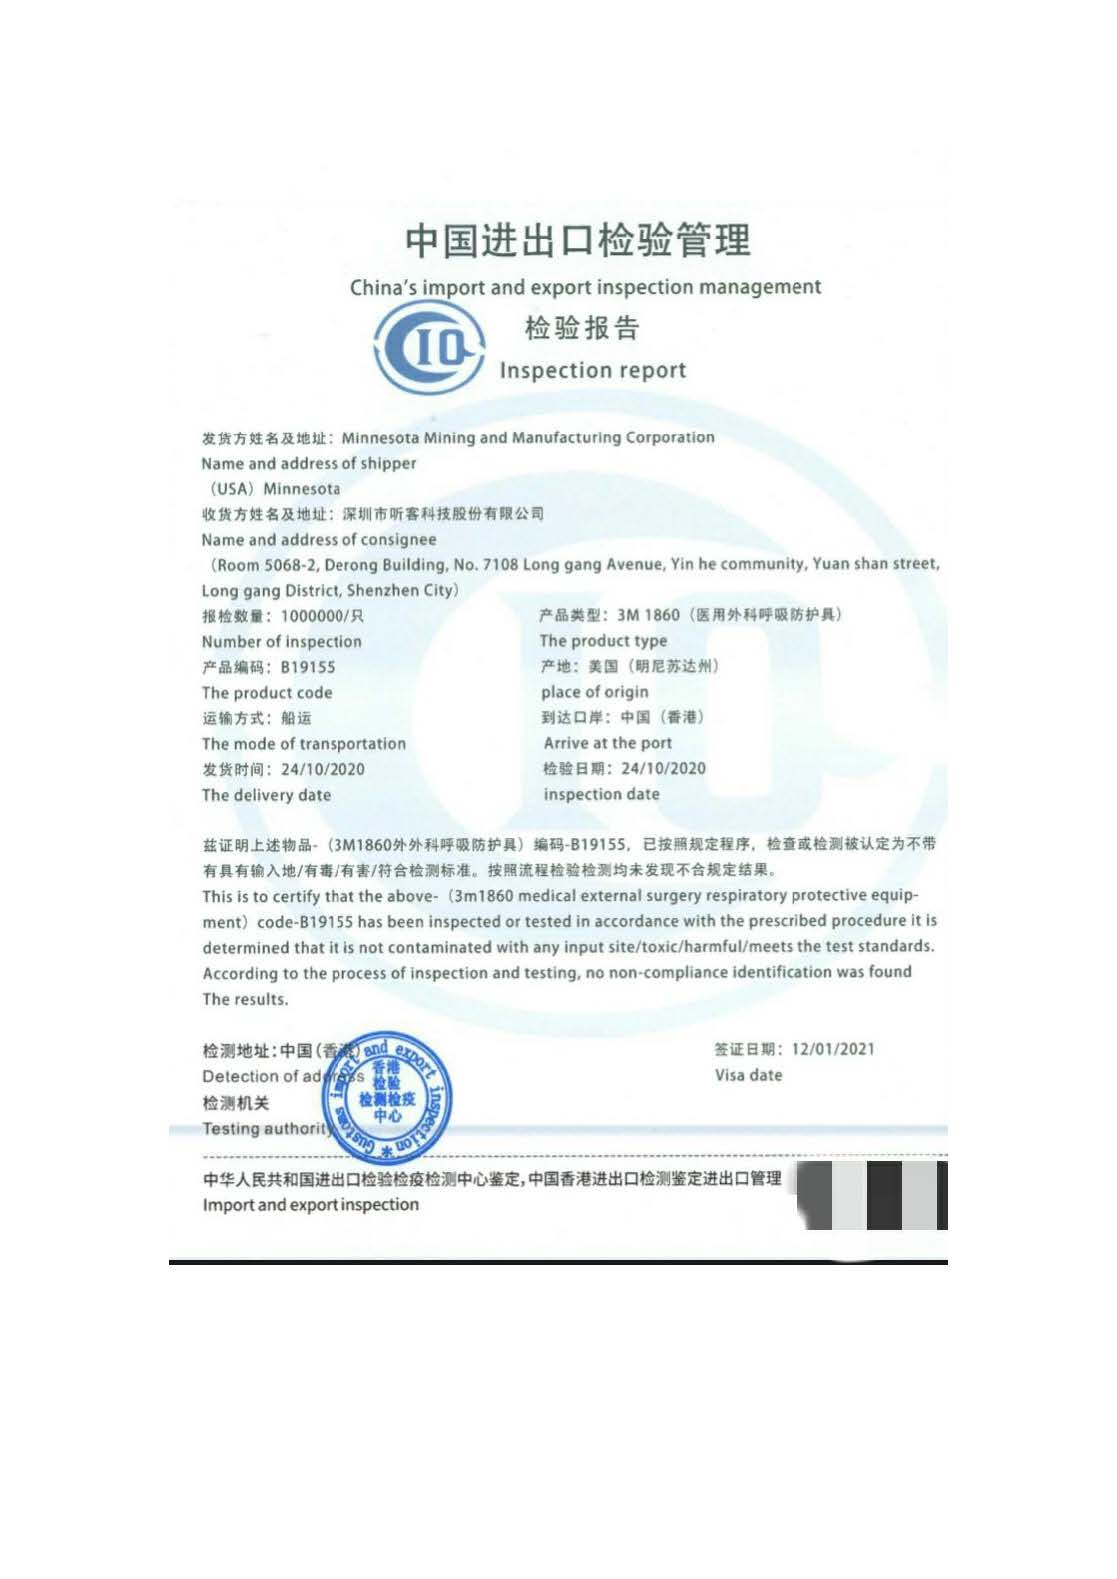 【Wholesale 3M 1860】Health Care Particulate Respirator and Surgical Mask from 20,000Pcs 7